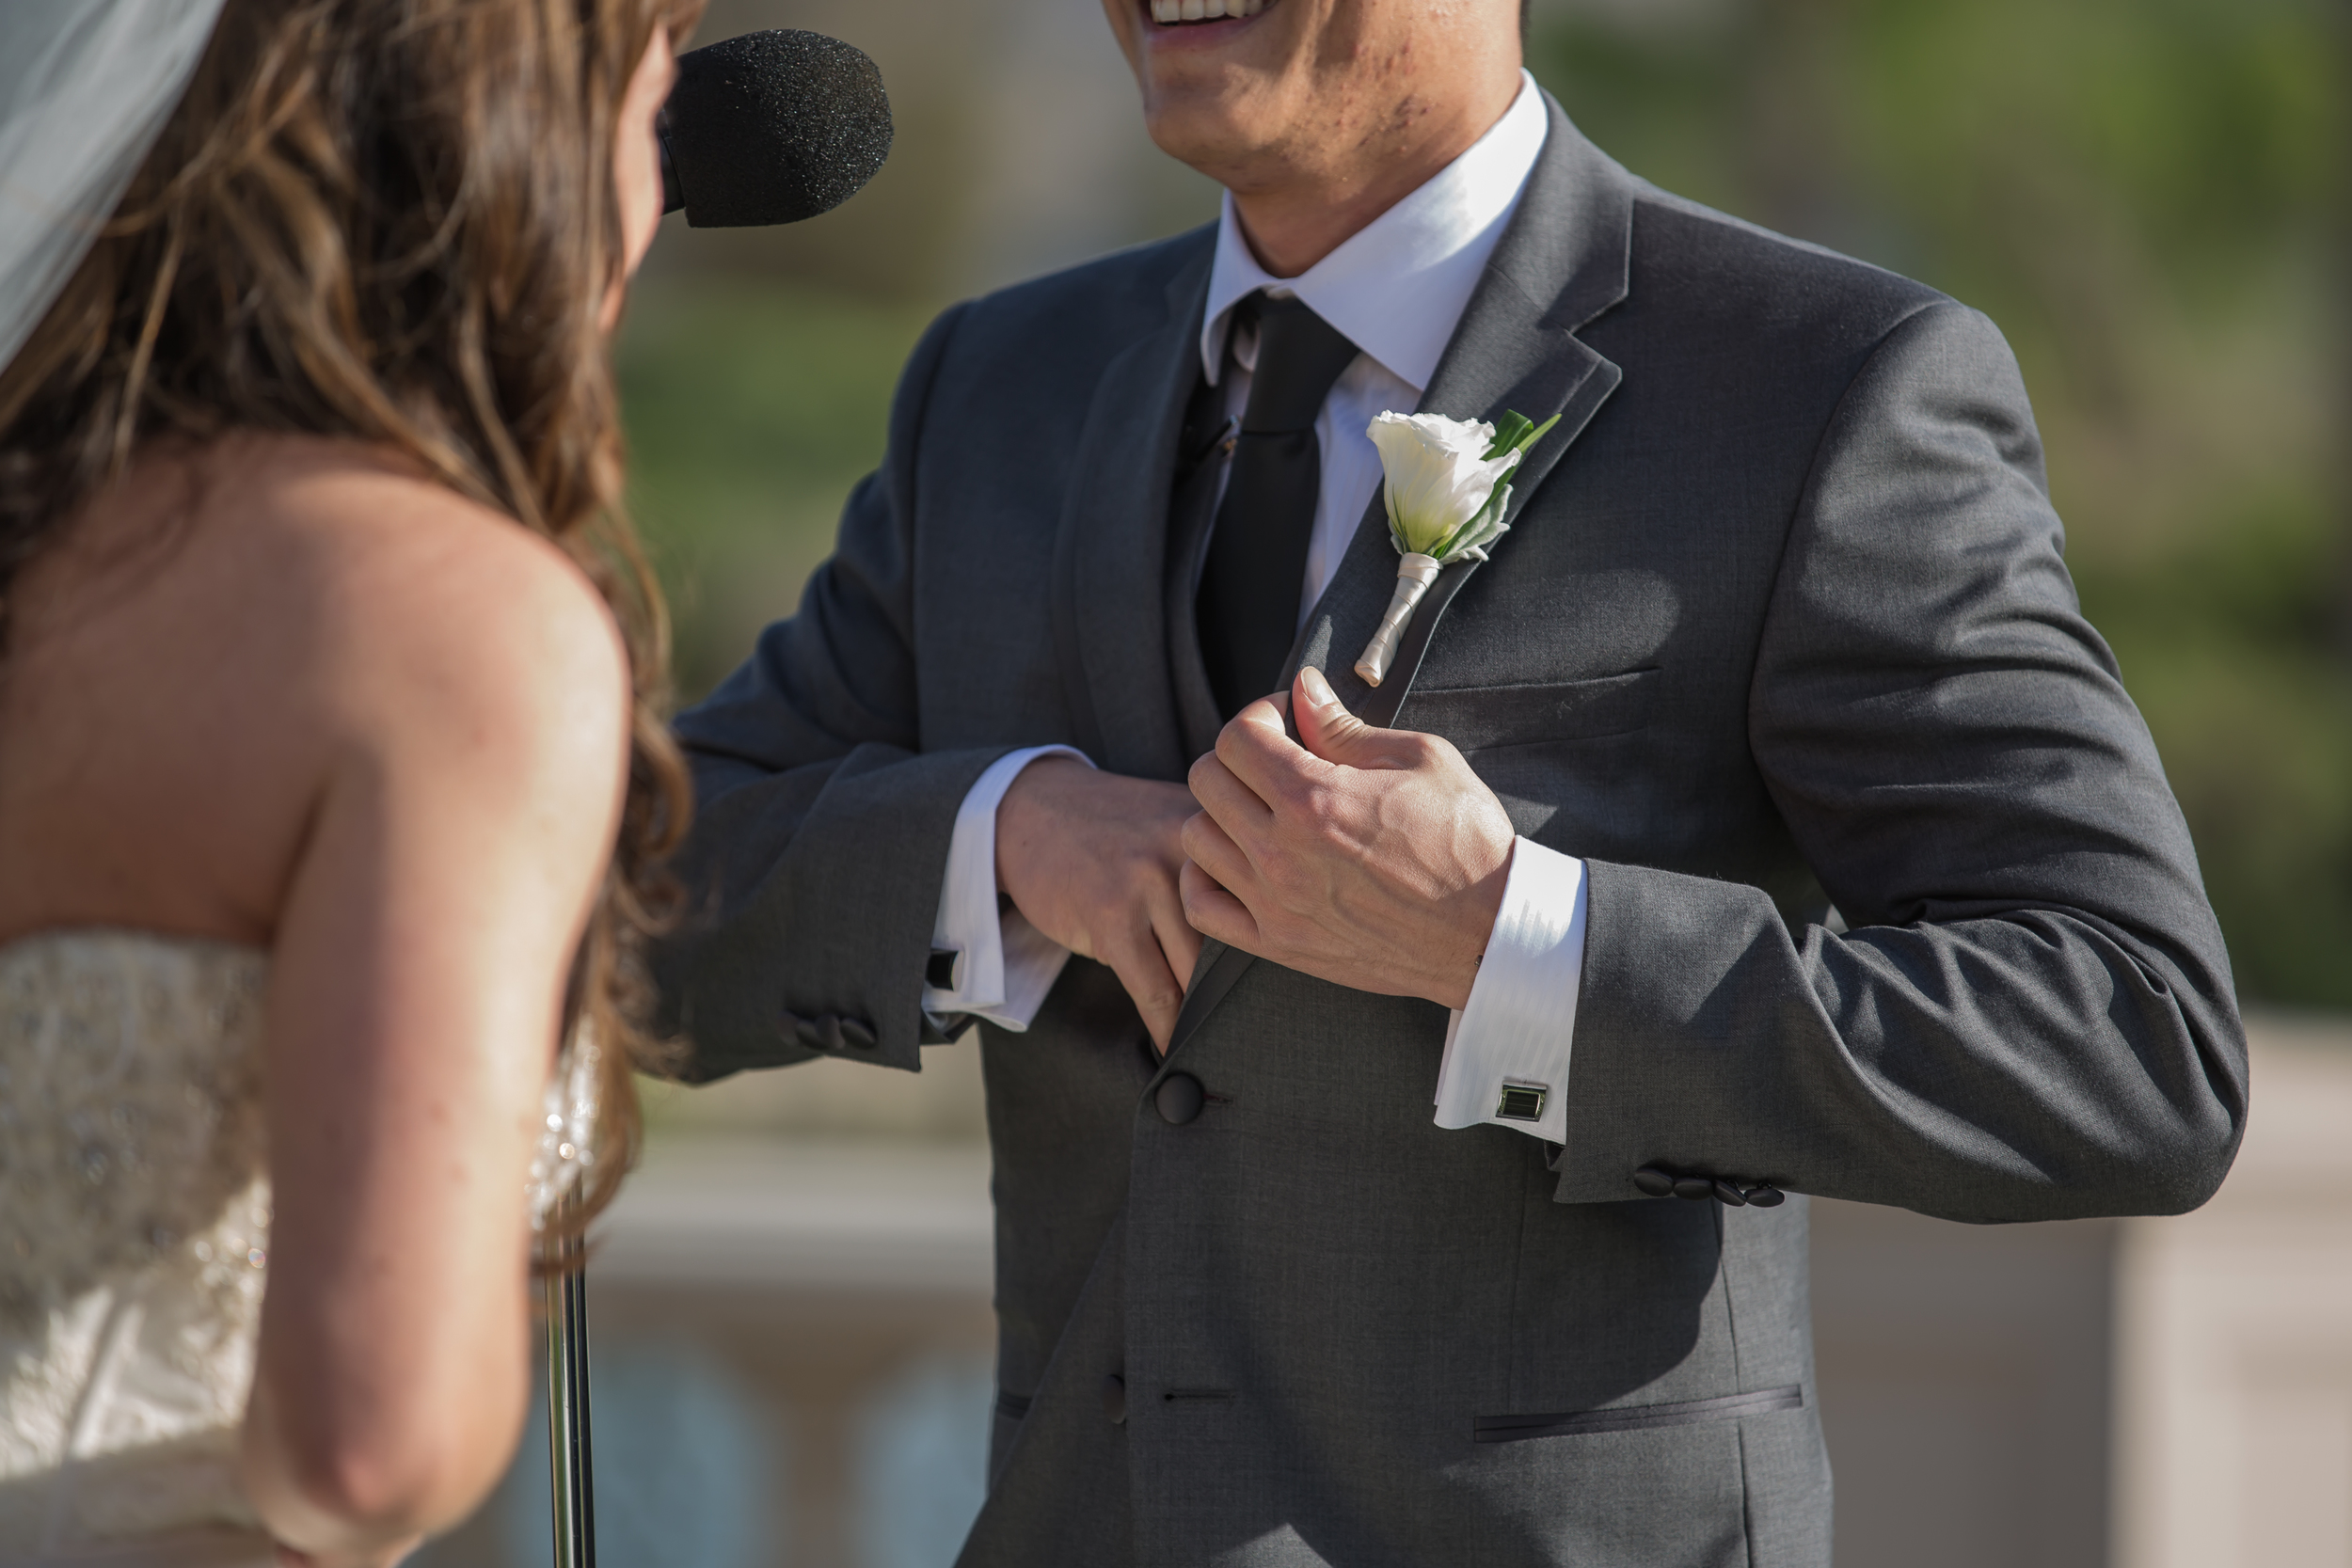 The couple hand wrote personal vows that made guests laugh and cry as they talked of their past and look forward to their future.     Las Vegas Wedding at   Siena Golf Club    |  Photography by   Ella Gagiano    |   Las Wedding Planner   Andrea Eppolito